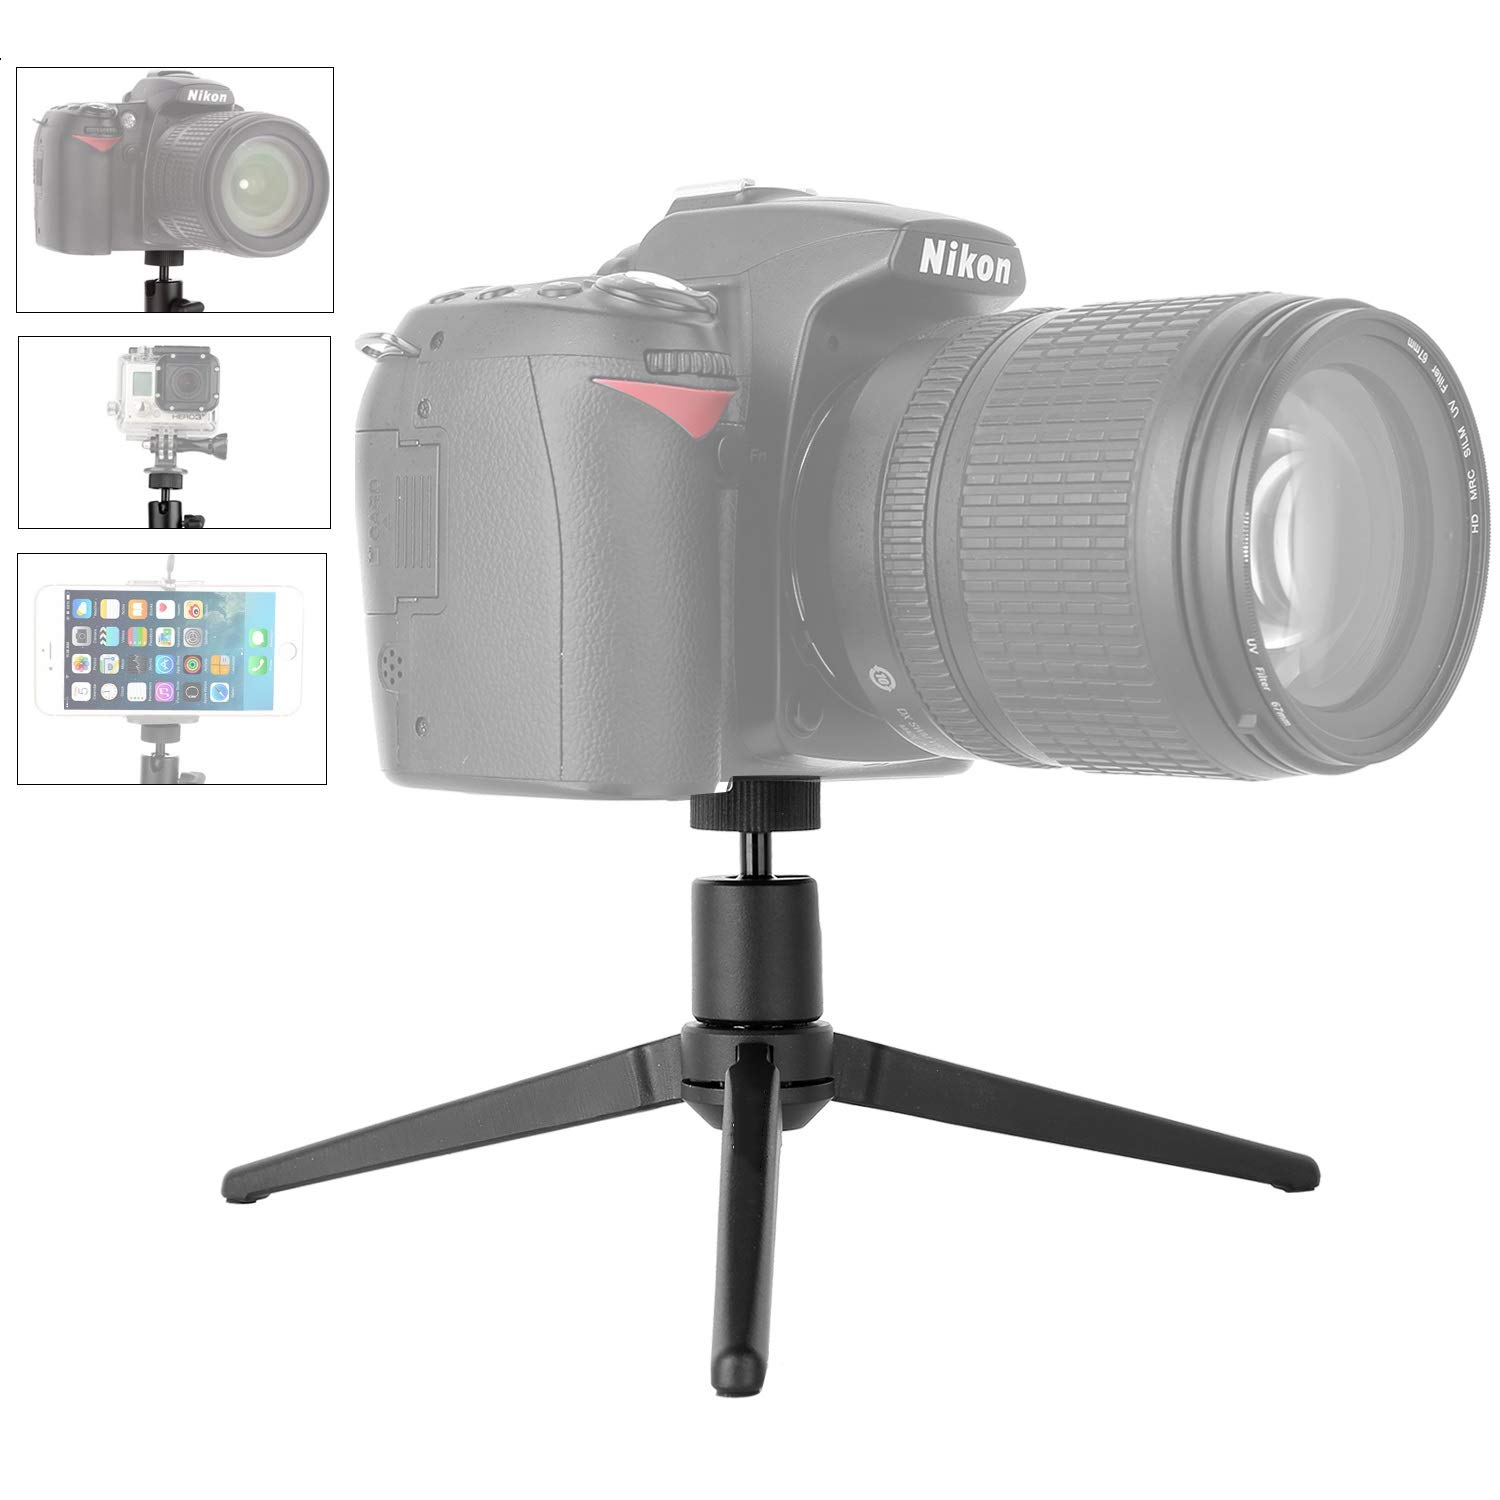 Kamisafe Aluminum Mini Tripod Desktop Tabletop Tripod Stand with 1/4 Inch Screw Compatible for Zhiyun Smooth Q/Smooth 4 /DJI OSMO Mobile 2 /Feiyu Gimbal/Gopro/Cellphones/DSLR Camera/Projector by KAMISAFE